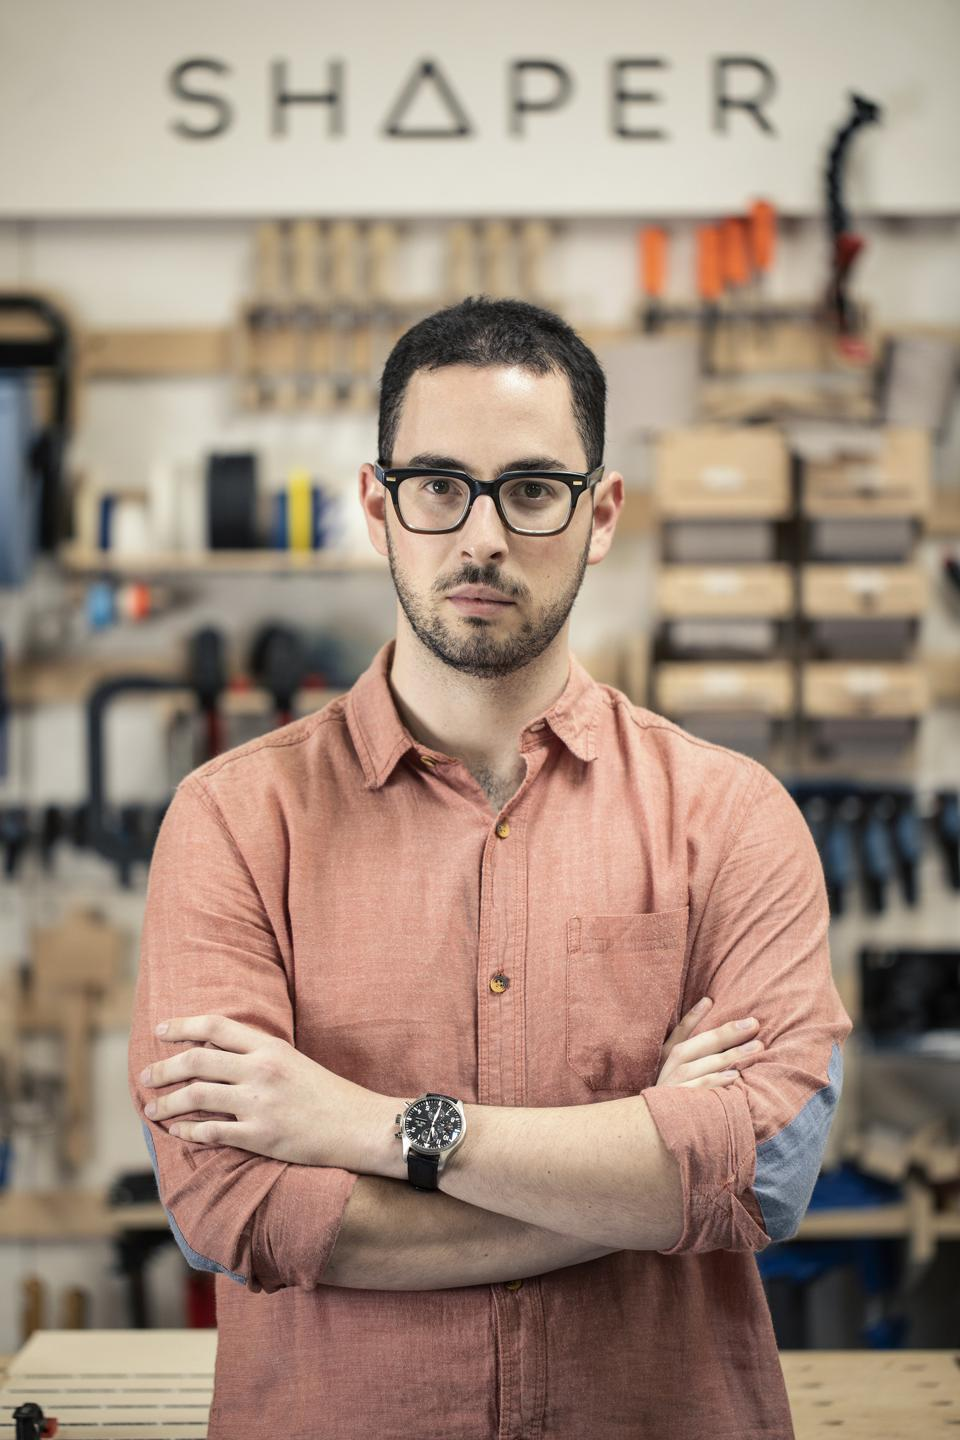 Blum wasn't only a woodworker as a kid, however. He was also a natural entrepreneur who had started two companies—a video production one and a computer repair one—by the time he was 13.